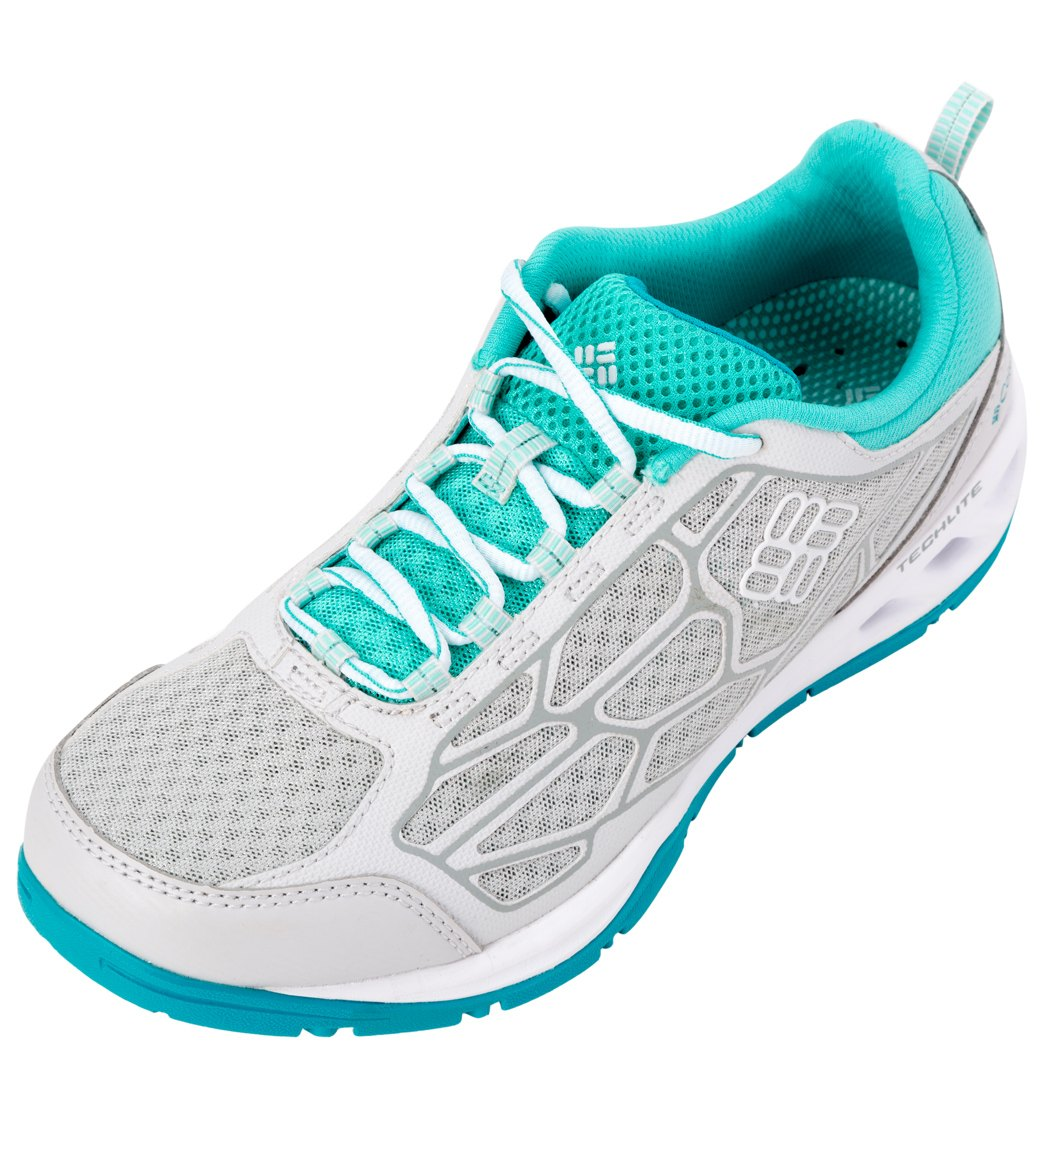 df1e012dd609 Columbia Footwear Women s Megavent Fly Water Shoes at ...